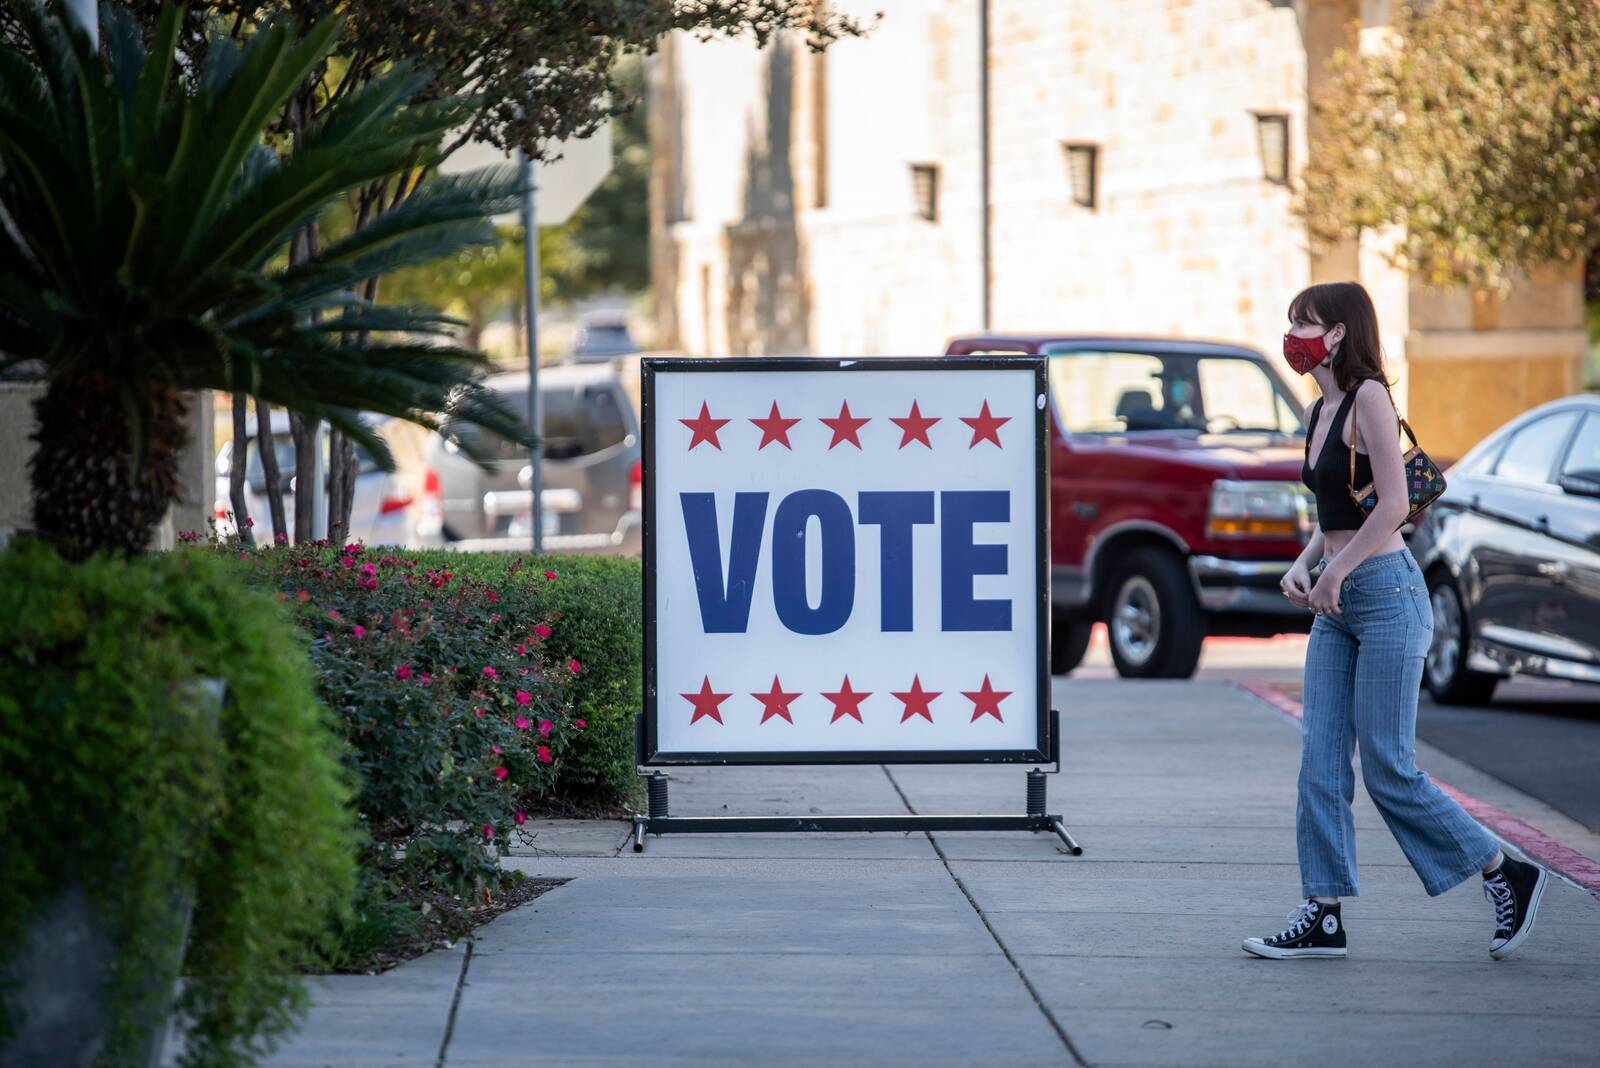 A voter walks toward a polling location on election day in Austin, Texas on Nov. 3, 2020. Credit: Sergio Flores/AFP via Getty Images